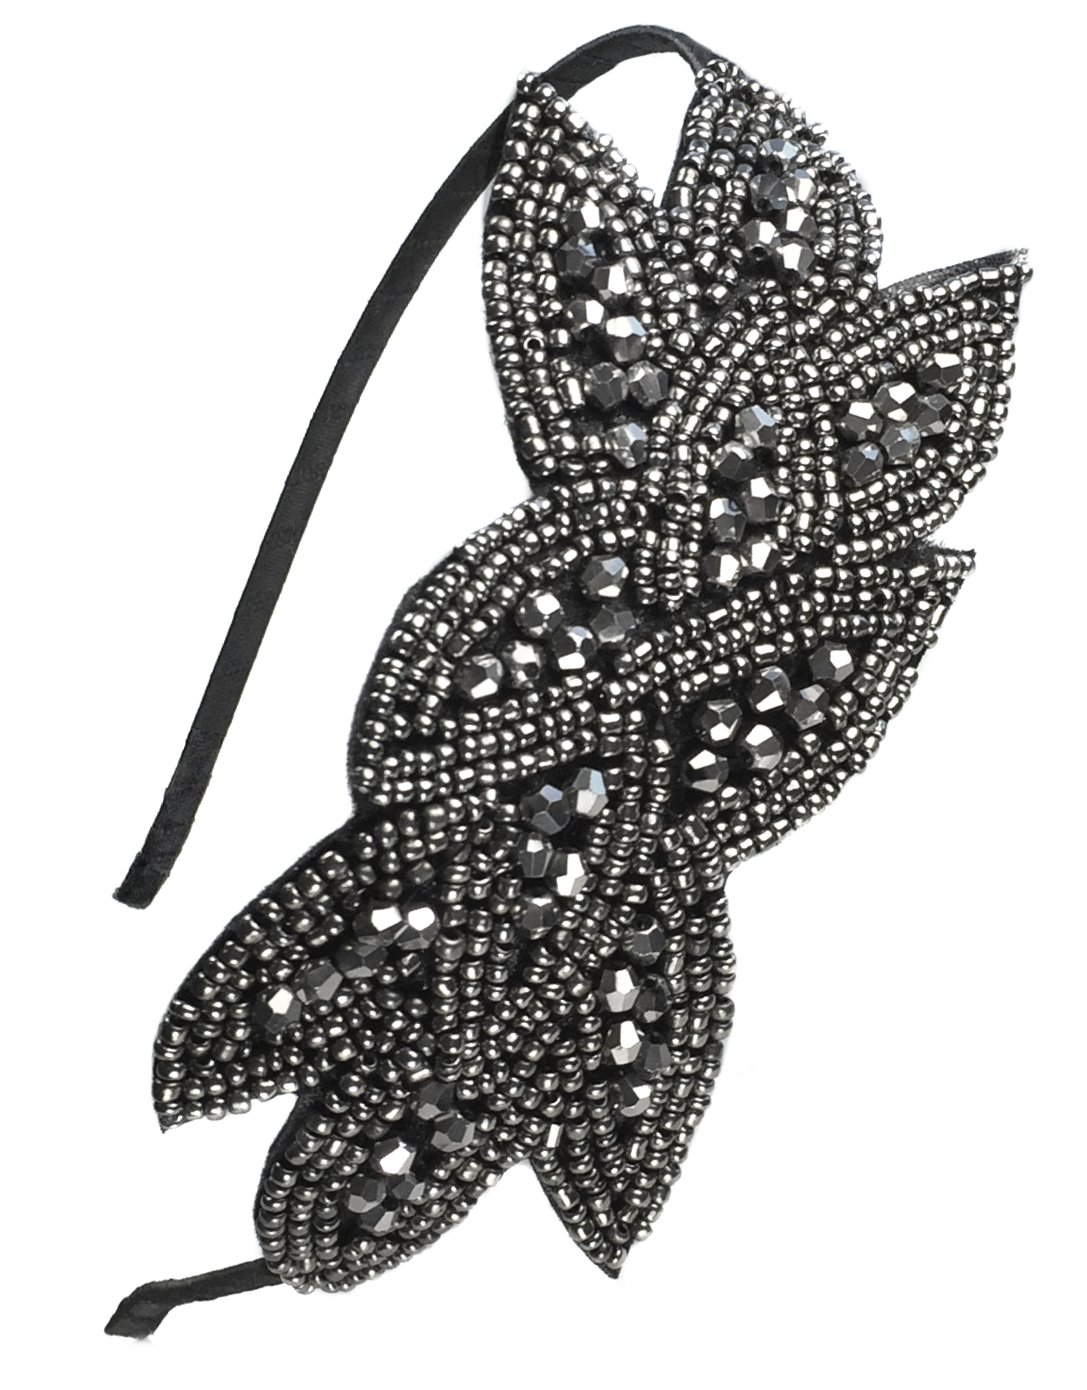 Beaded Flapper Headband Leaf Vintage 1920s Inspired Hairband Hair Accessory, Grey by CB Accessories (Image #6)